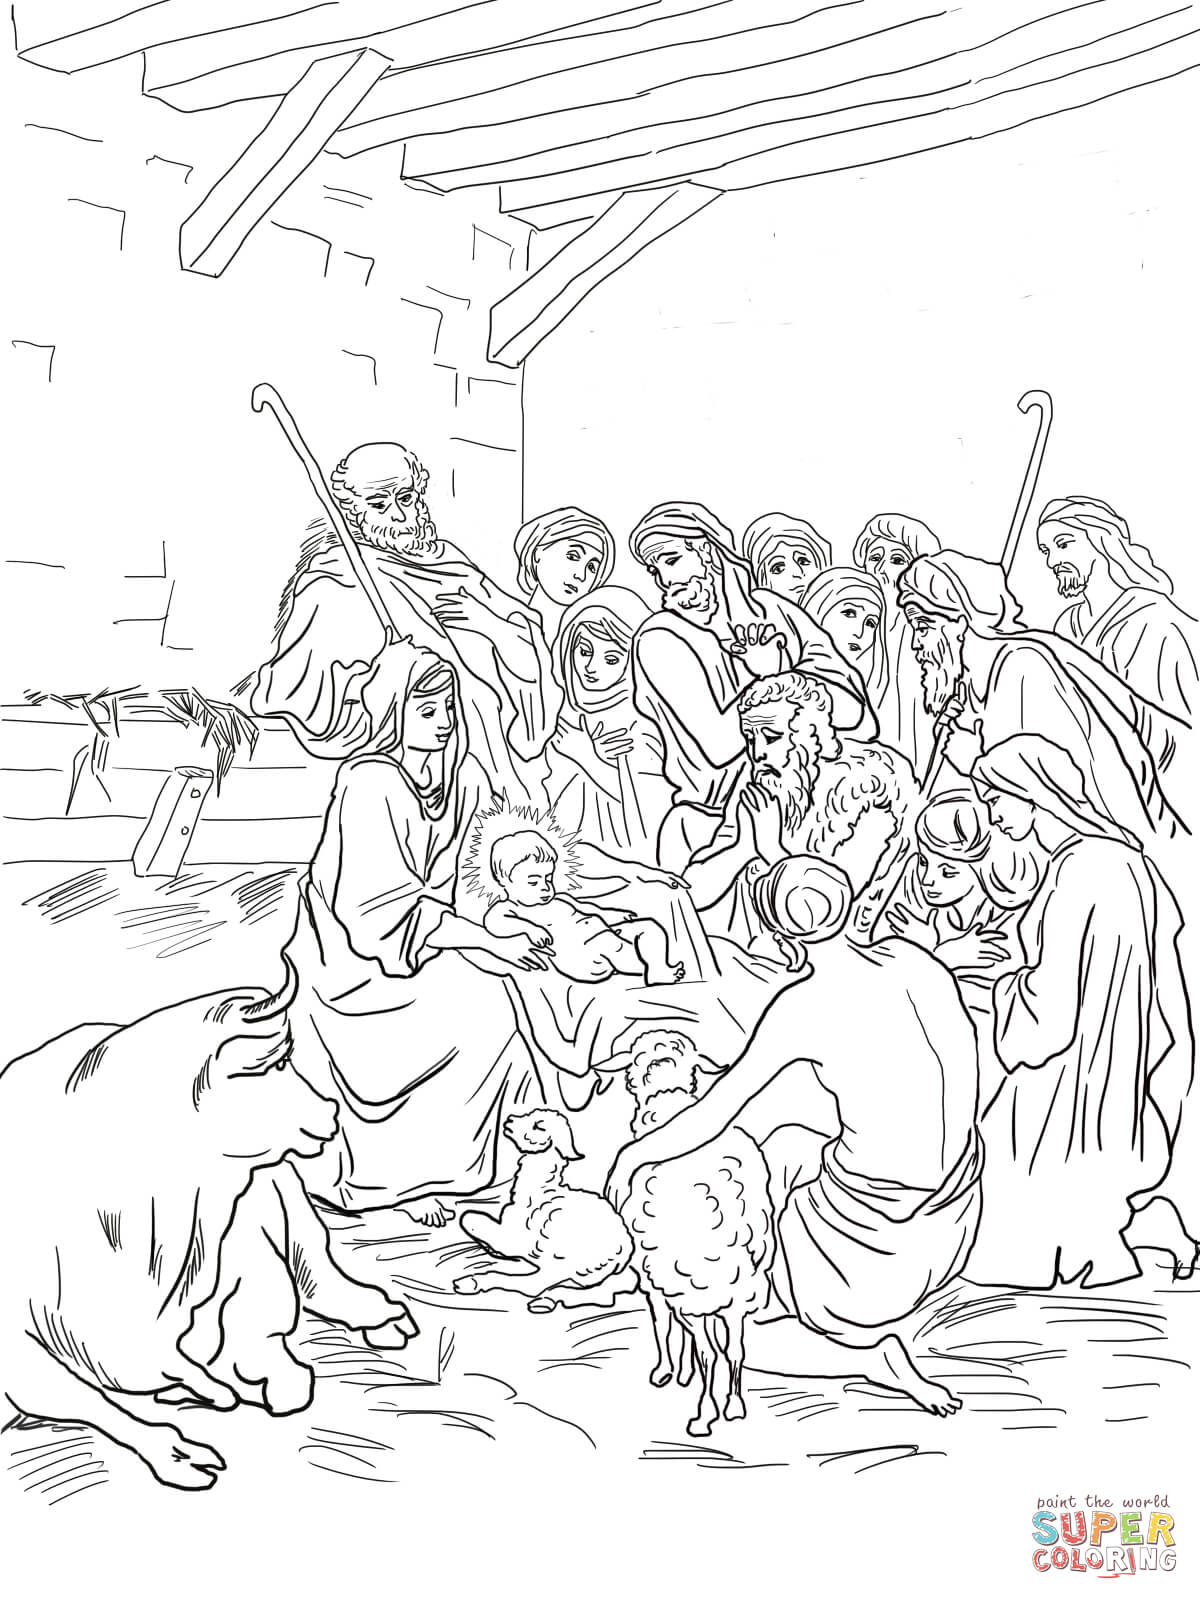 Nativity Scene With Holy Family Shepherds And Animals Coloring Page